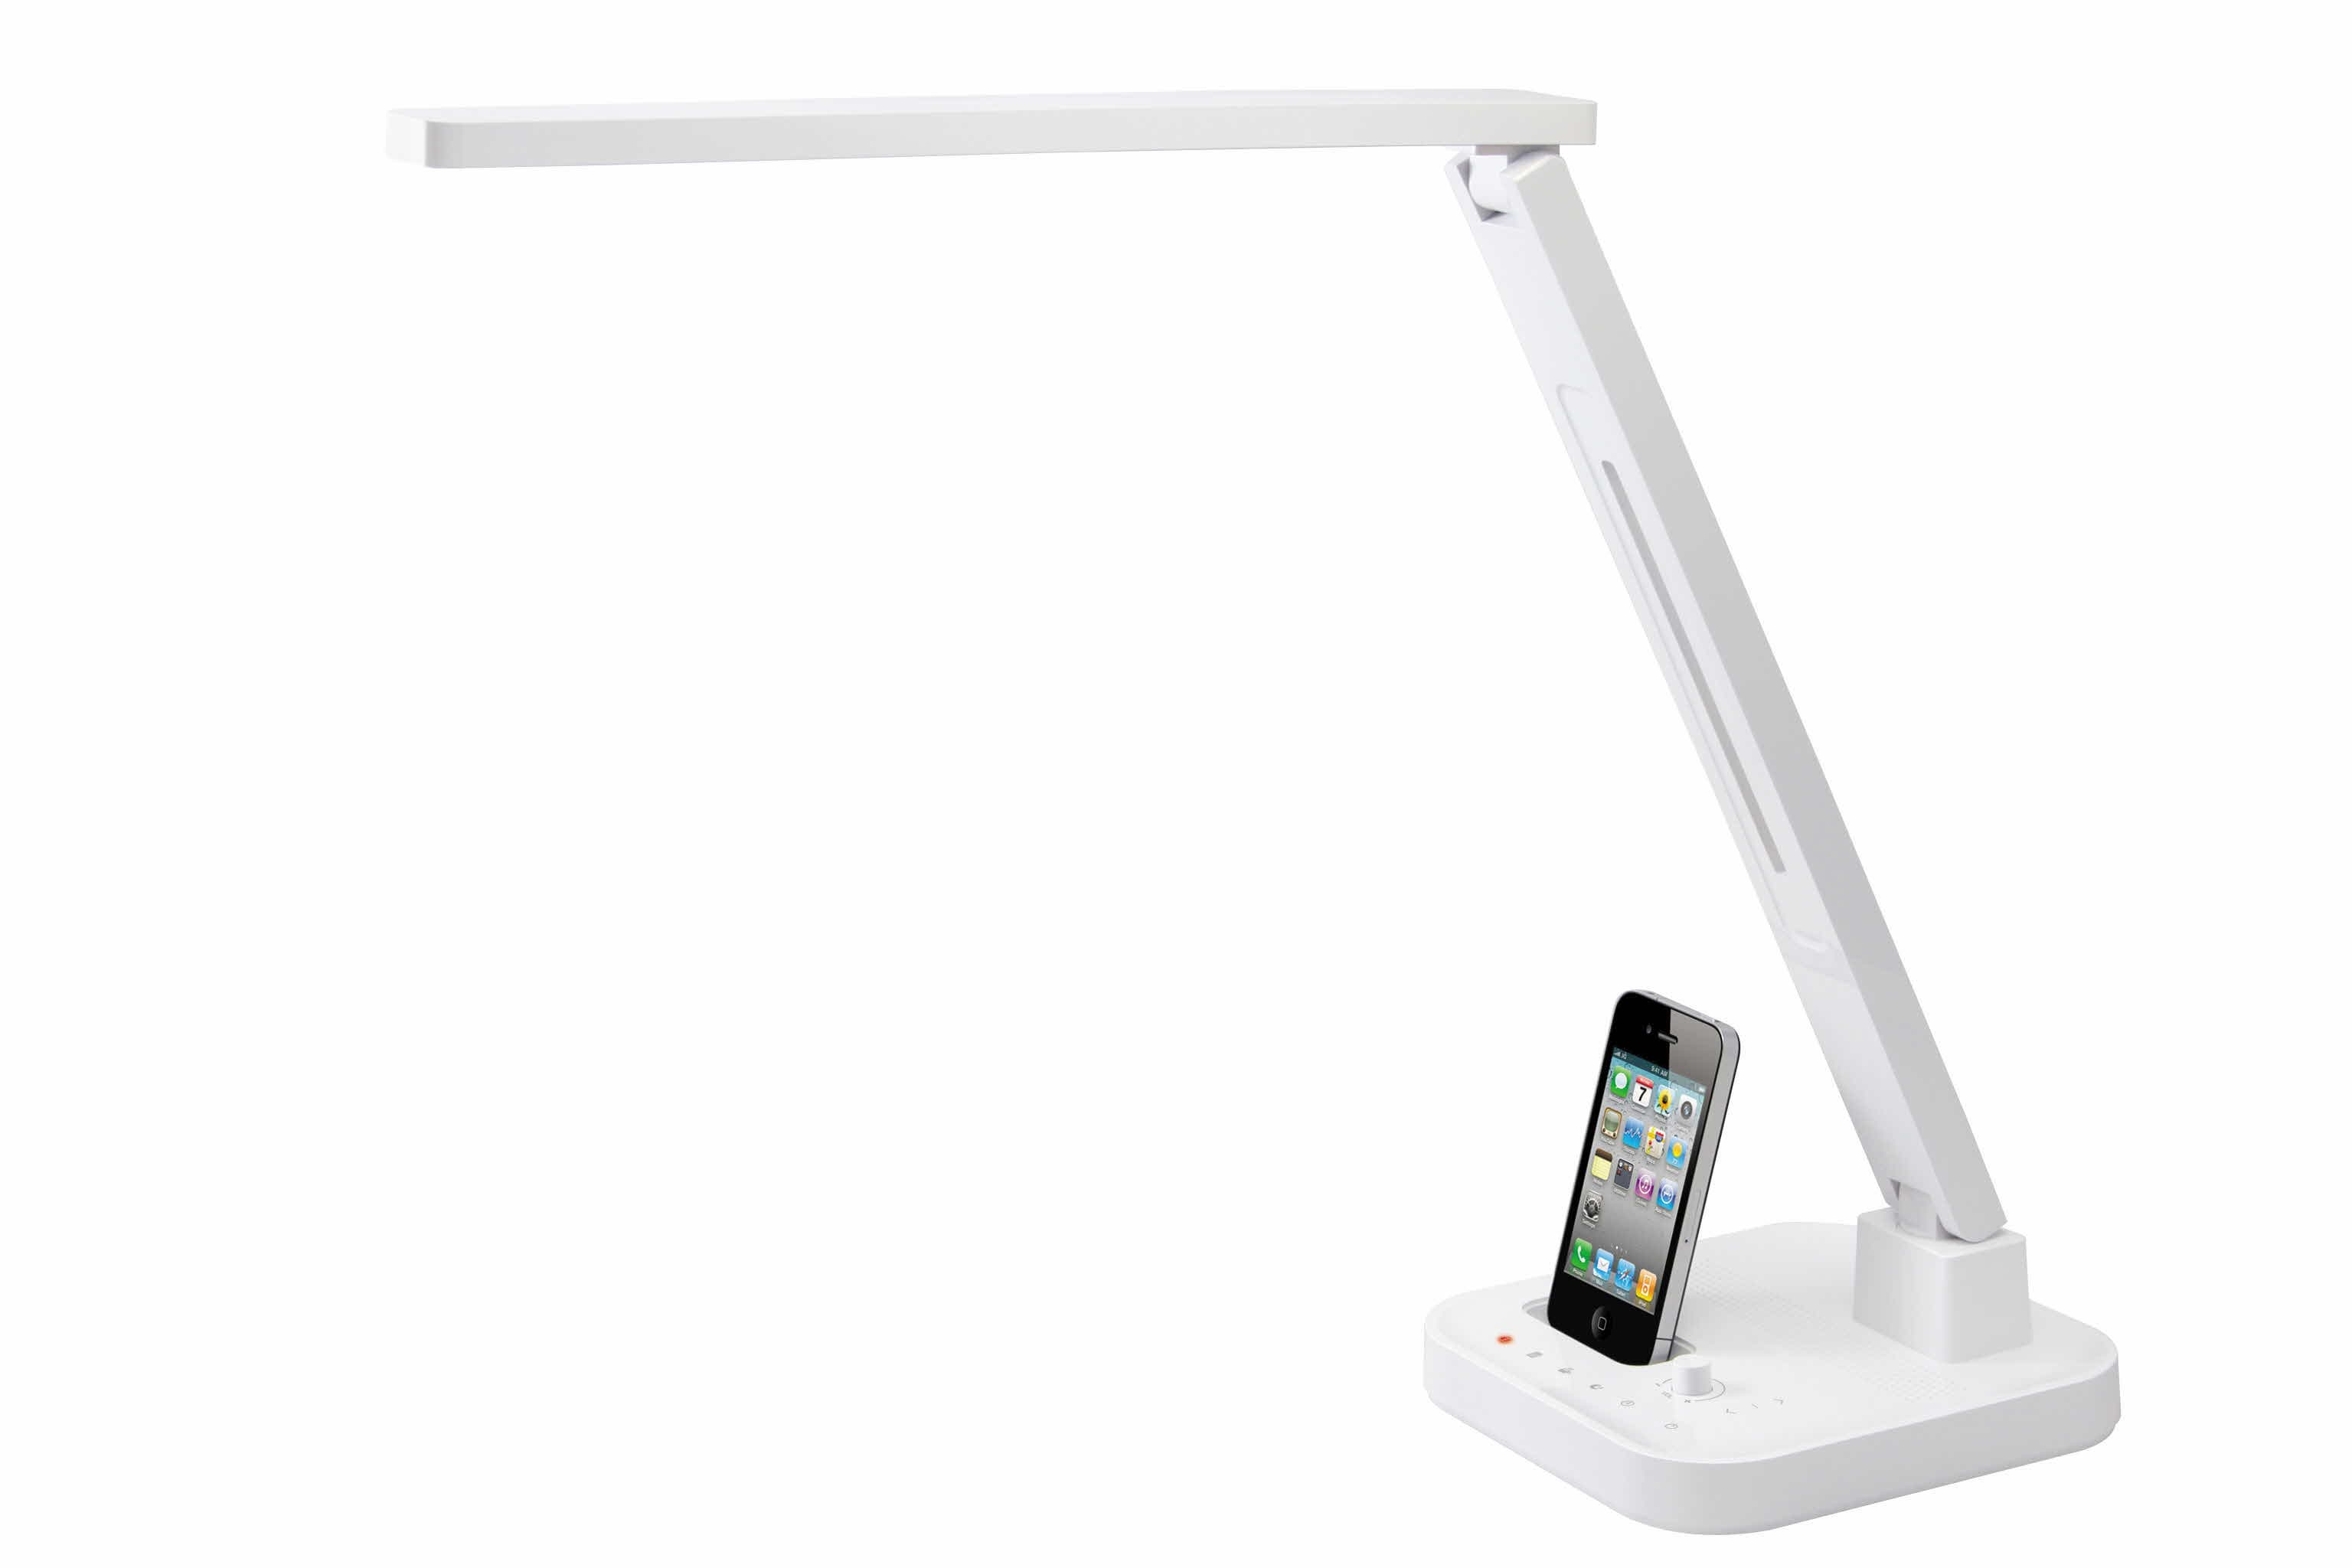 Led Desk Lamp From Zephyr Co Ltd B2b Marketplace Portal